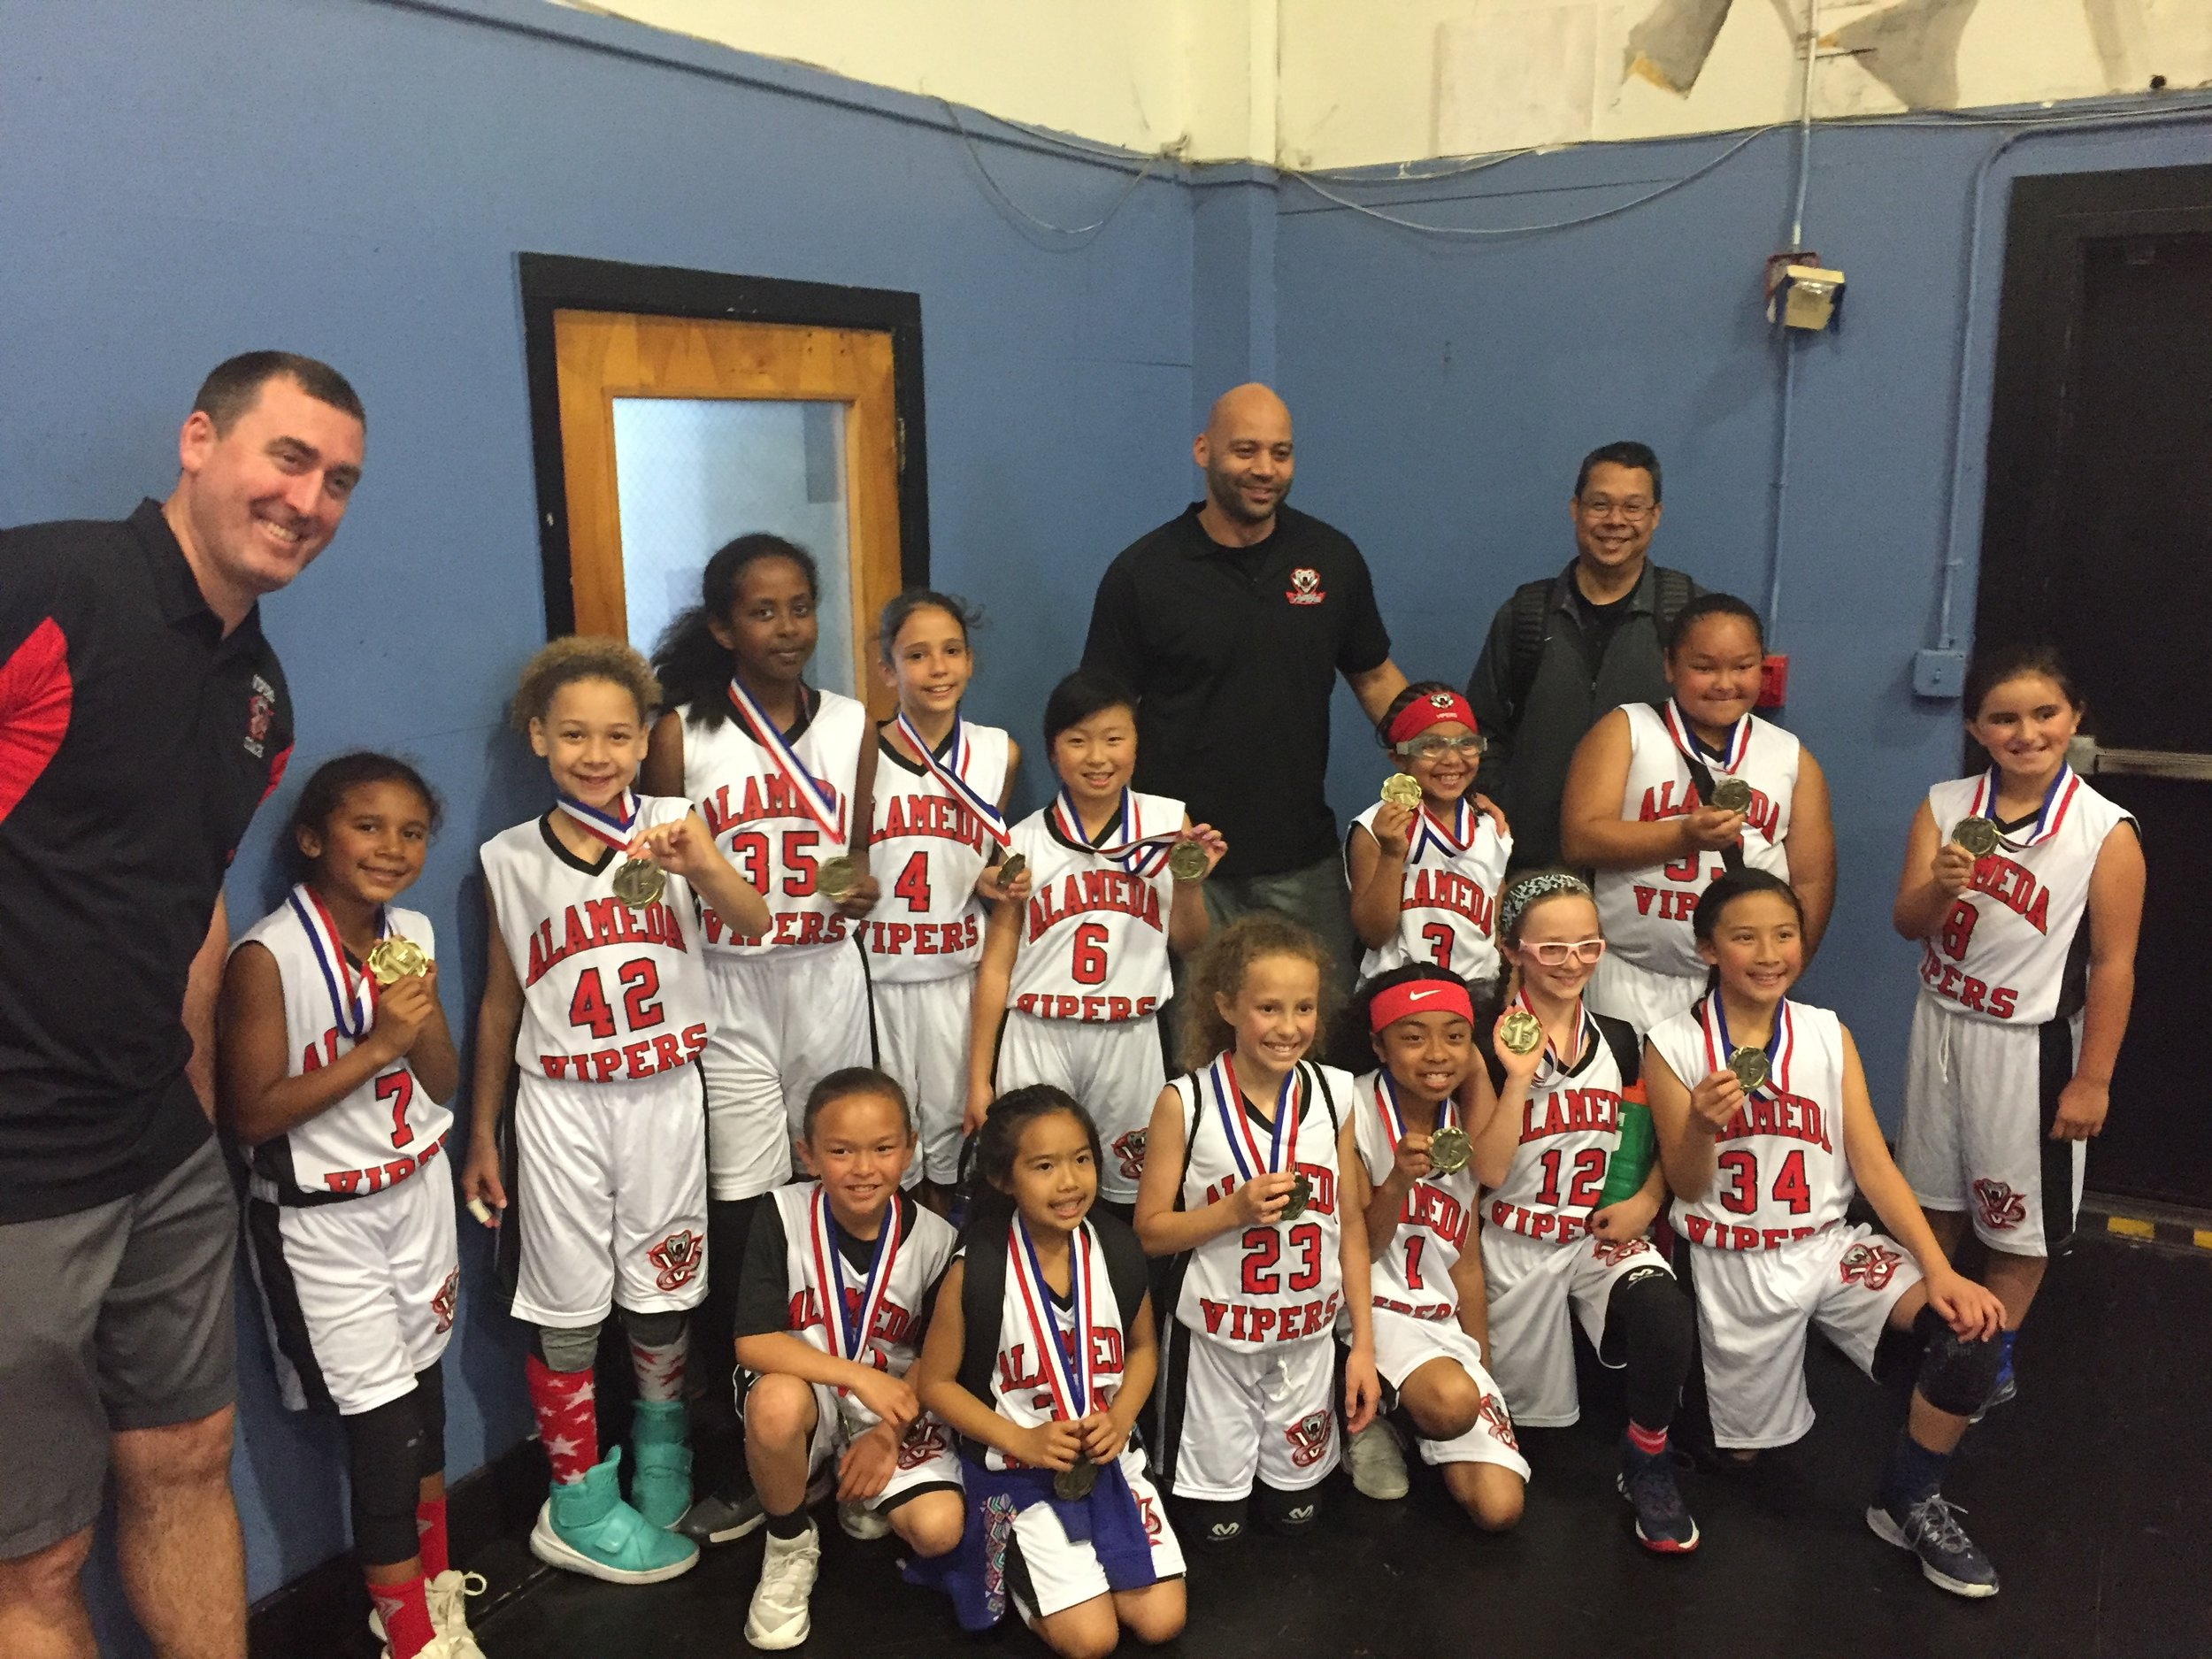 NEW Vipers Girls 3rd-4th grade team first tournament and great win. Great Coaches Patrick and Jeff and Coordinator Ken ! Good work and thanks parents !